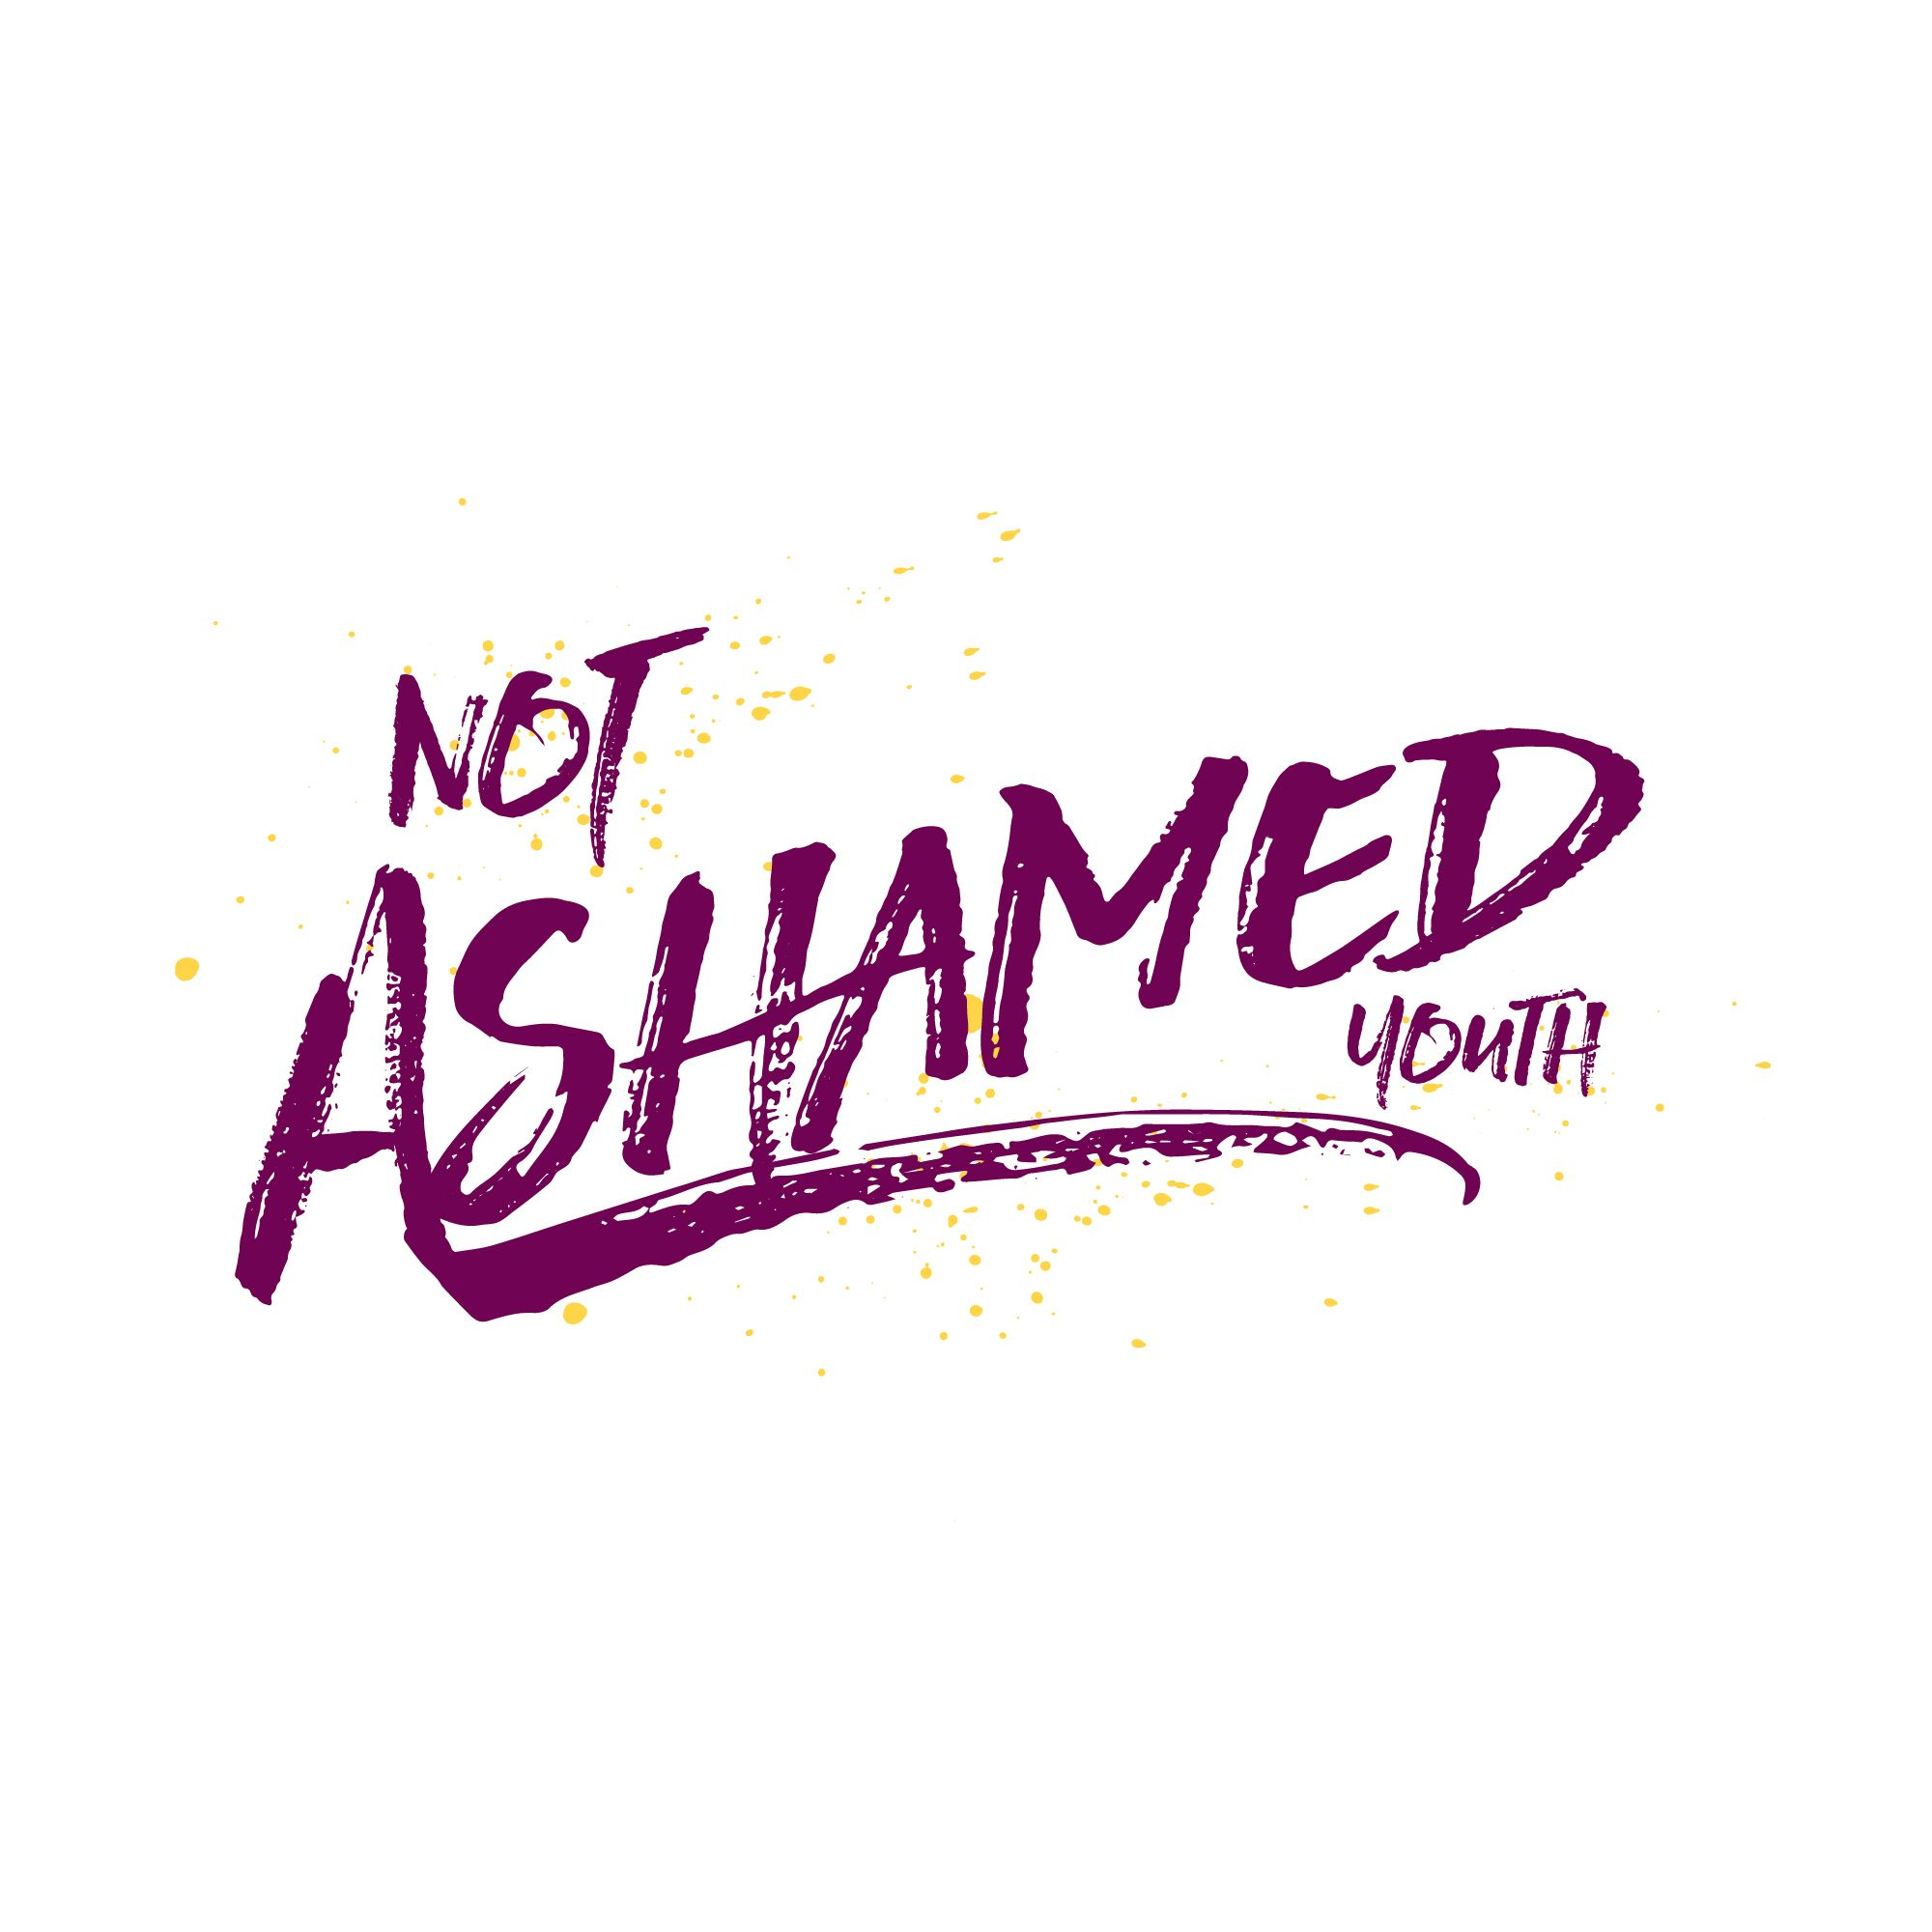 Not Ashamed Youth Group Youth Group Logos Youth shirts